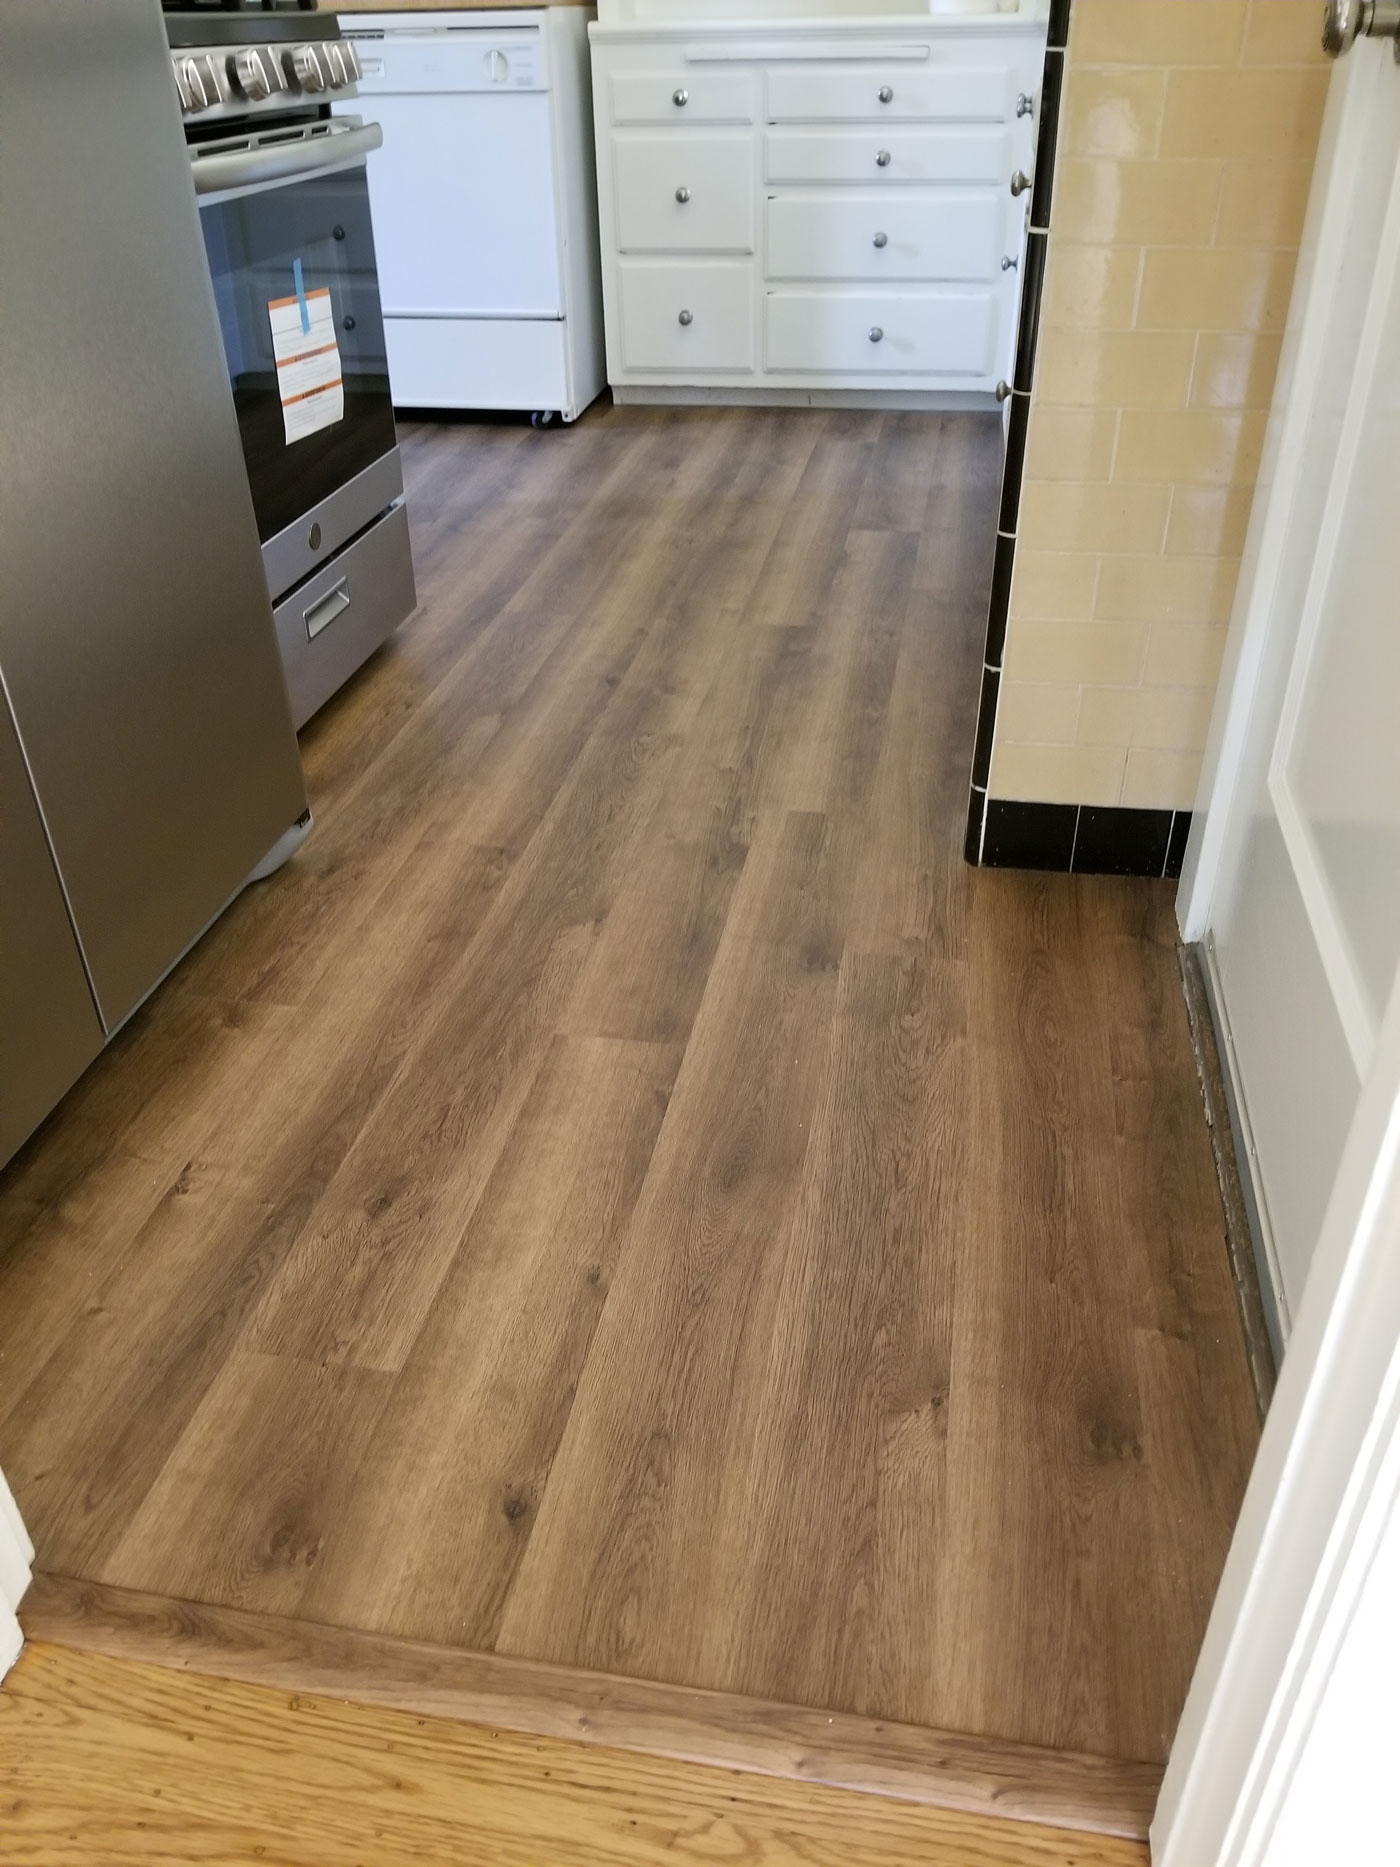 Water-proof LVT (luxury vinyl tile)applied over existing <br/> linoleum floors. 1 25 square-feet — Sunnyvale.